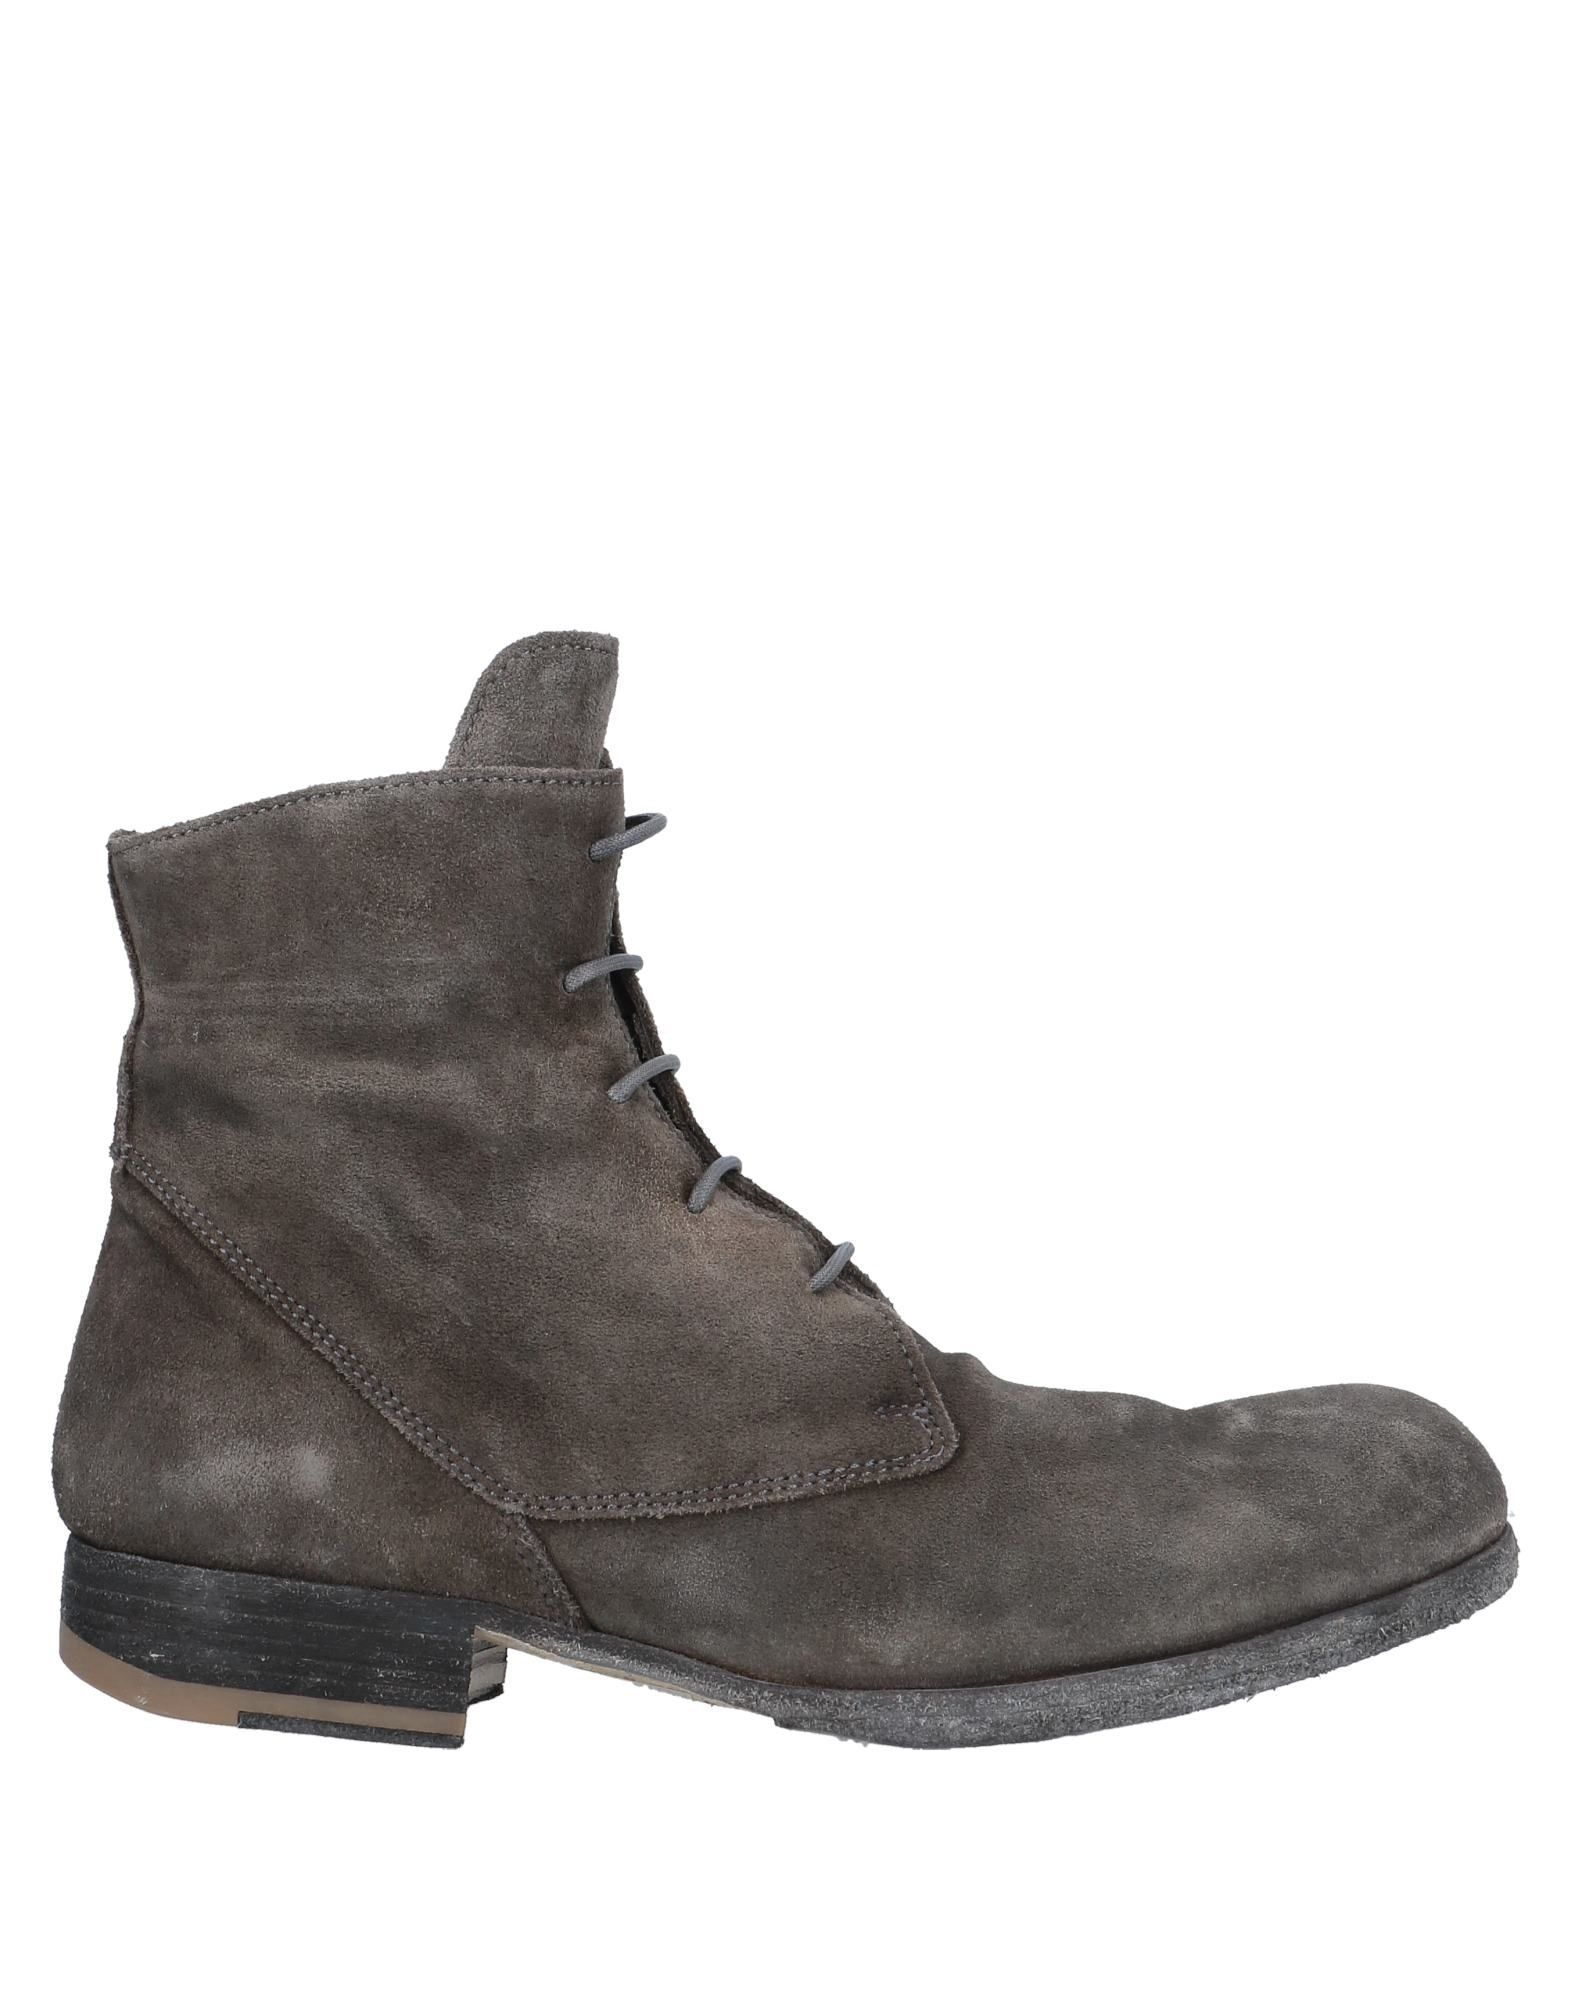 Officine Creative Italia Women's Ankle Boots Lead Leather